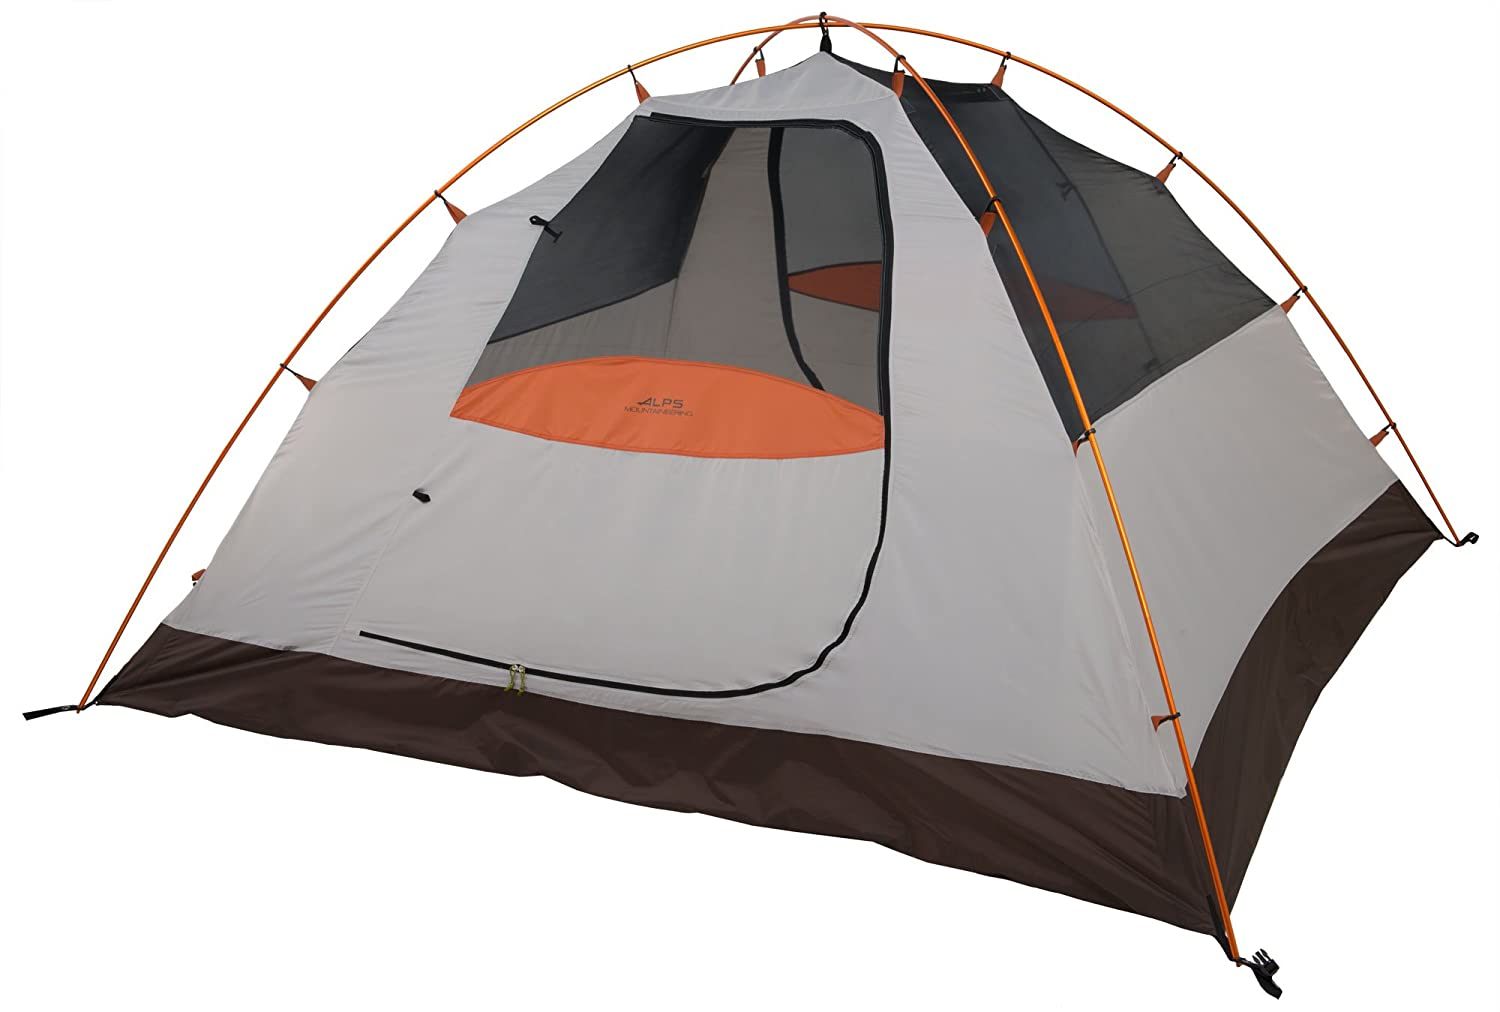 4. ALPS Mountaineering Lynx 4 Person Tent